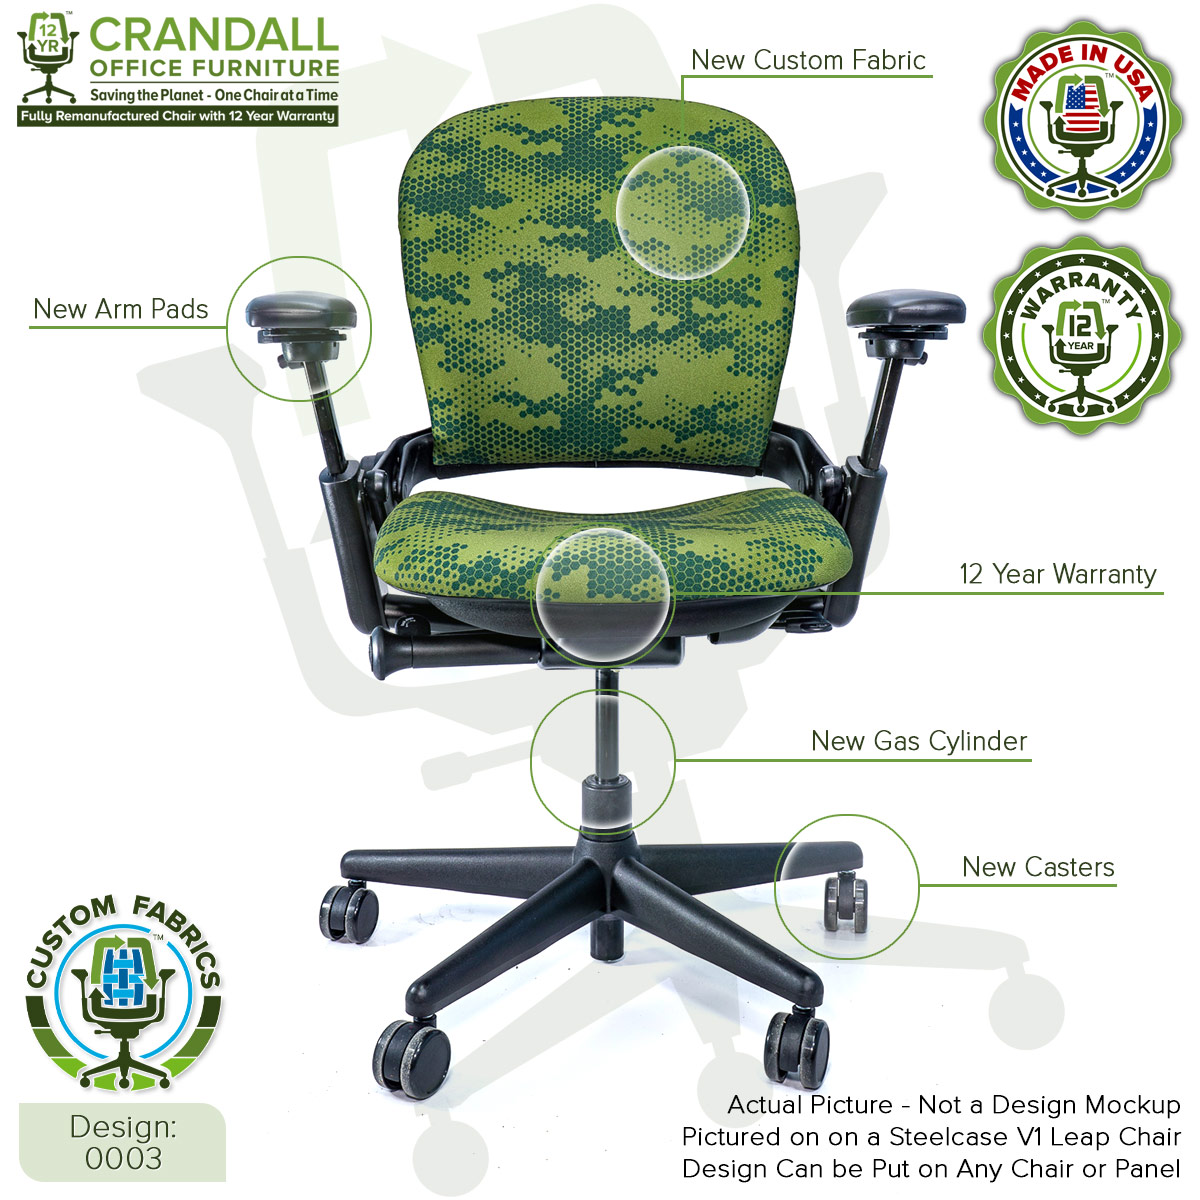 Custom Fabric Remanufactured Steelcase V1 Leap Chair - Design 0003 with Labels